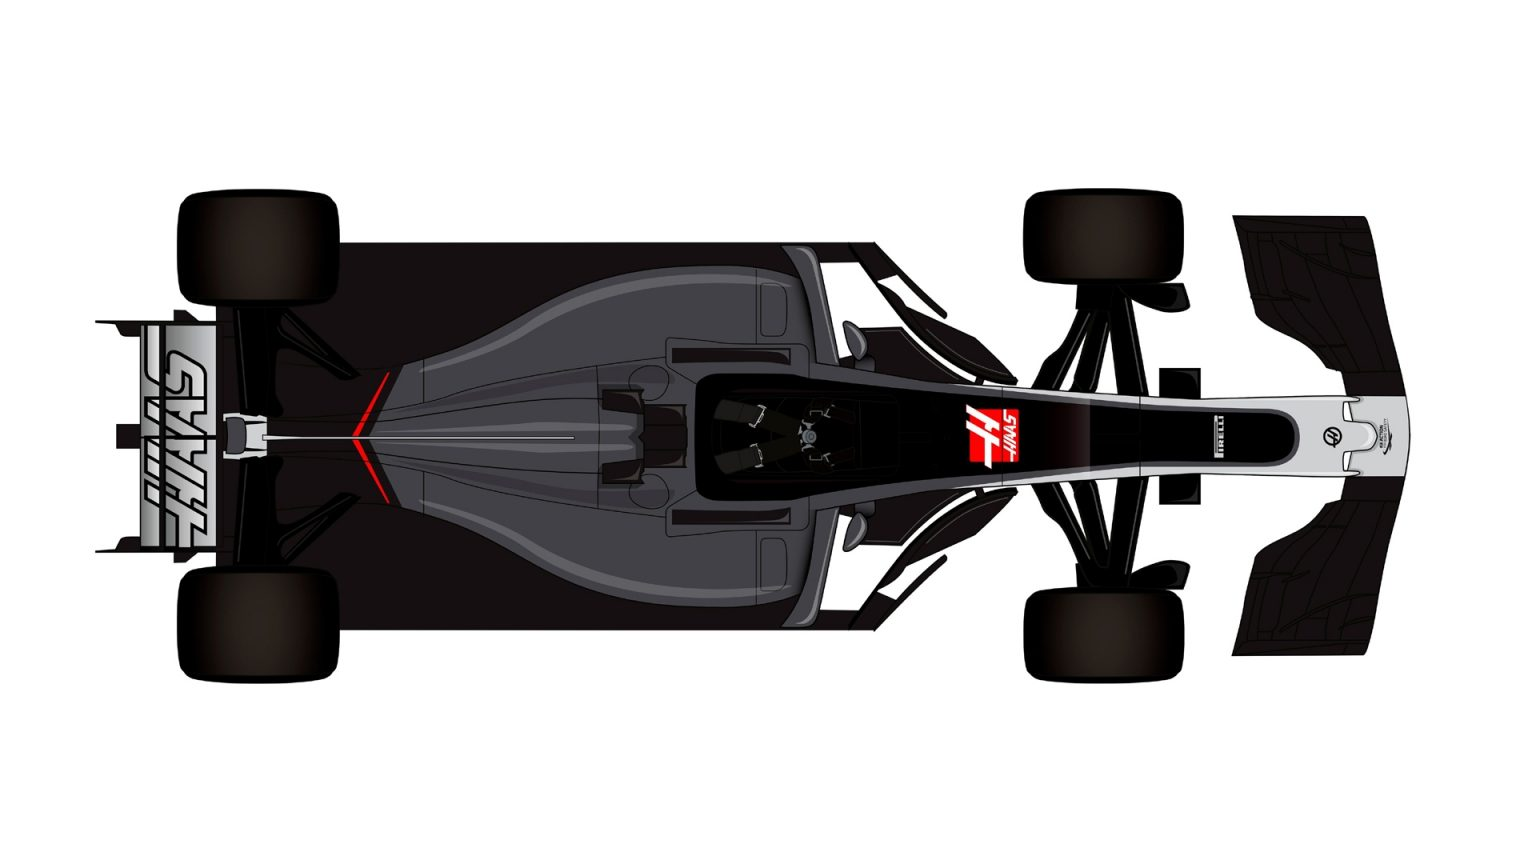 Haas F1 Revised Livery 3.jpg